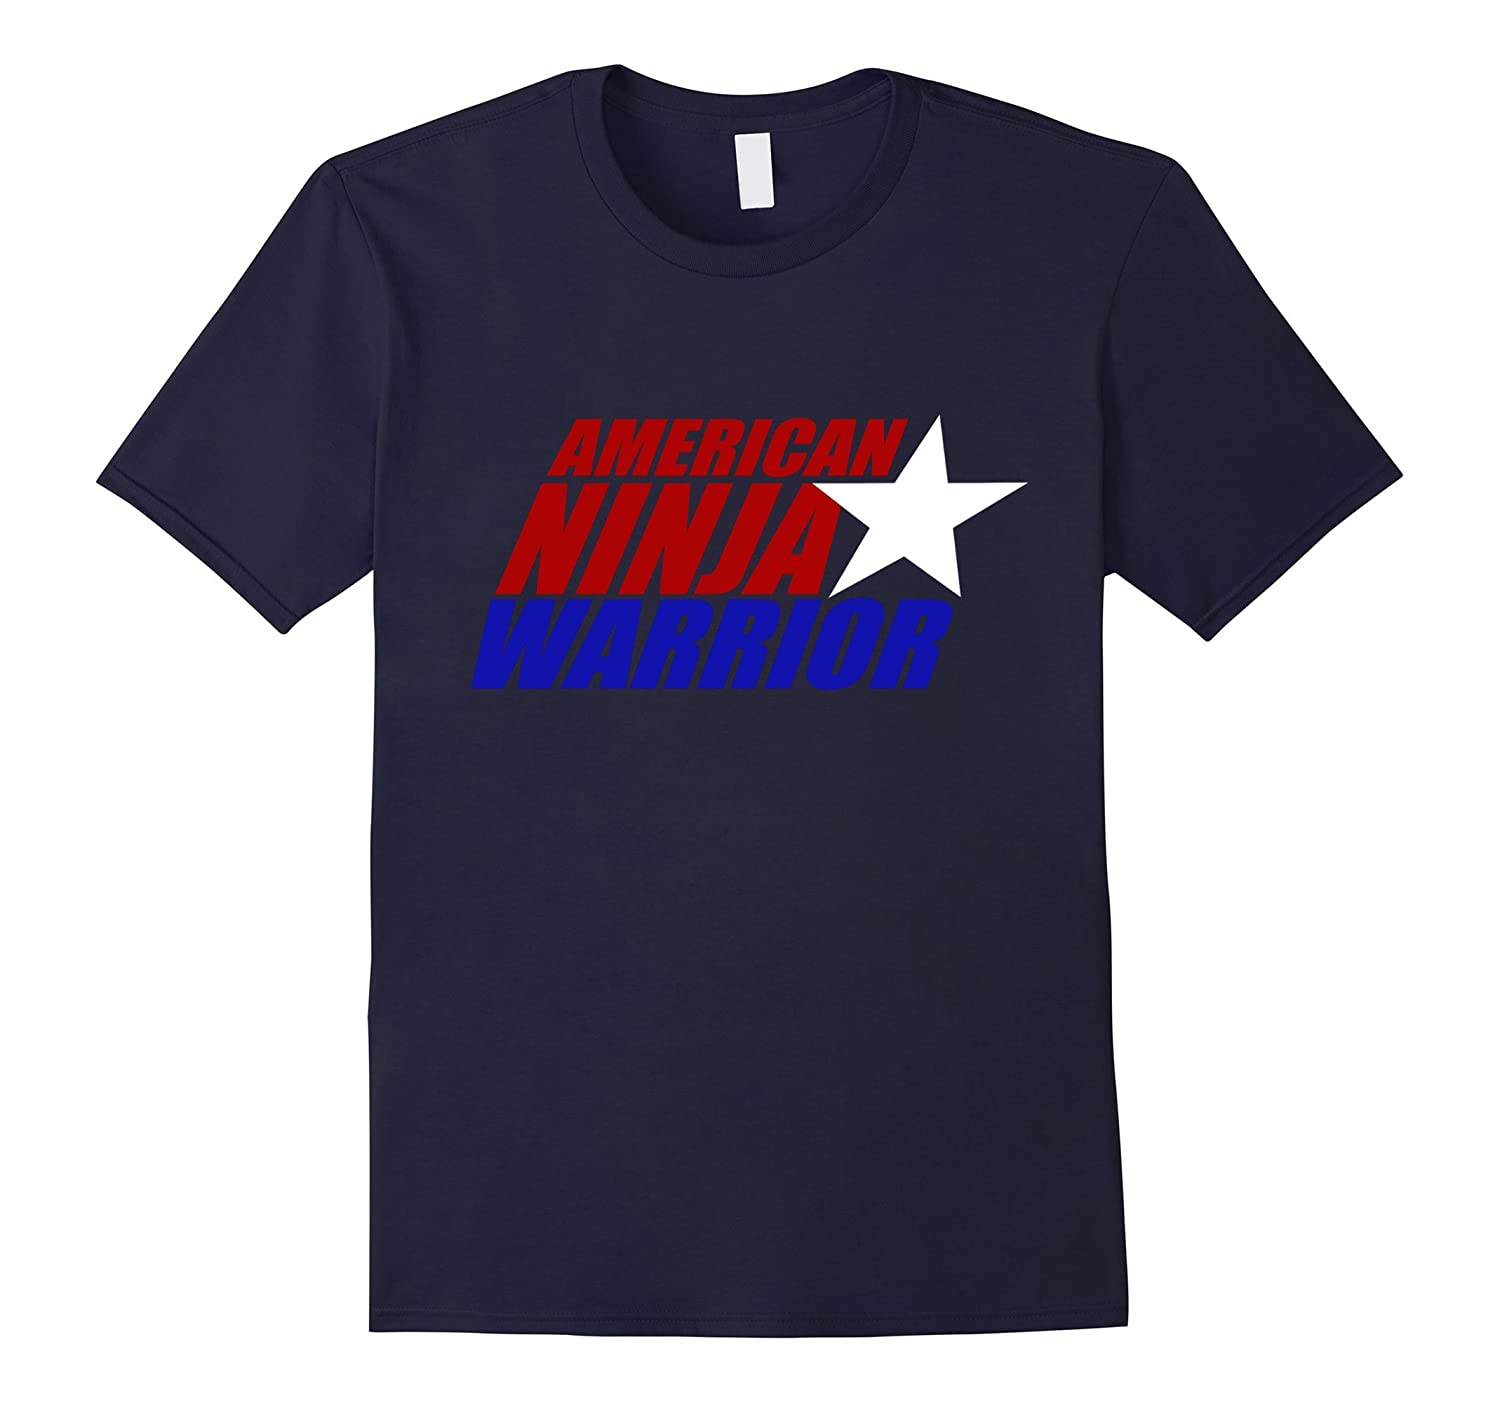 American-ninja Warrior 2016 T-shirt-BN